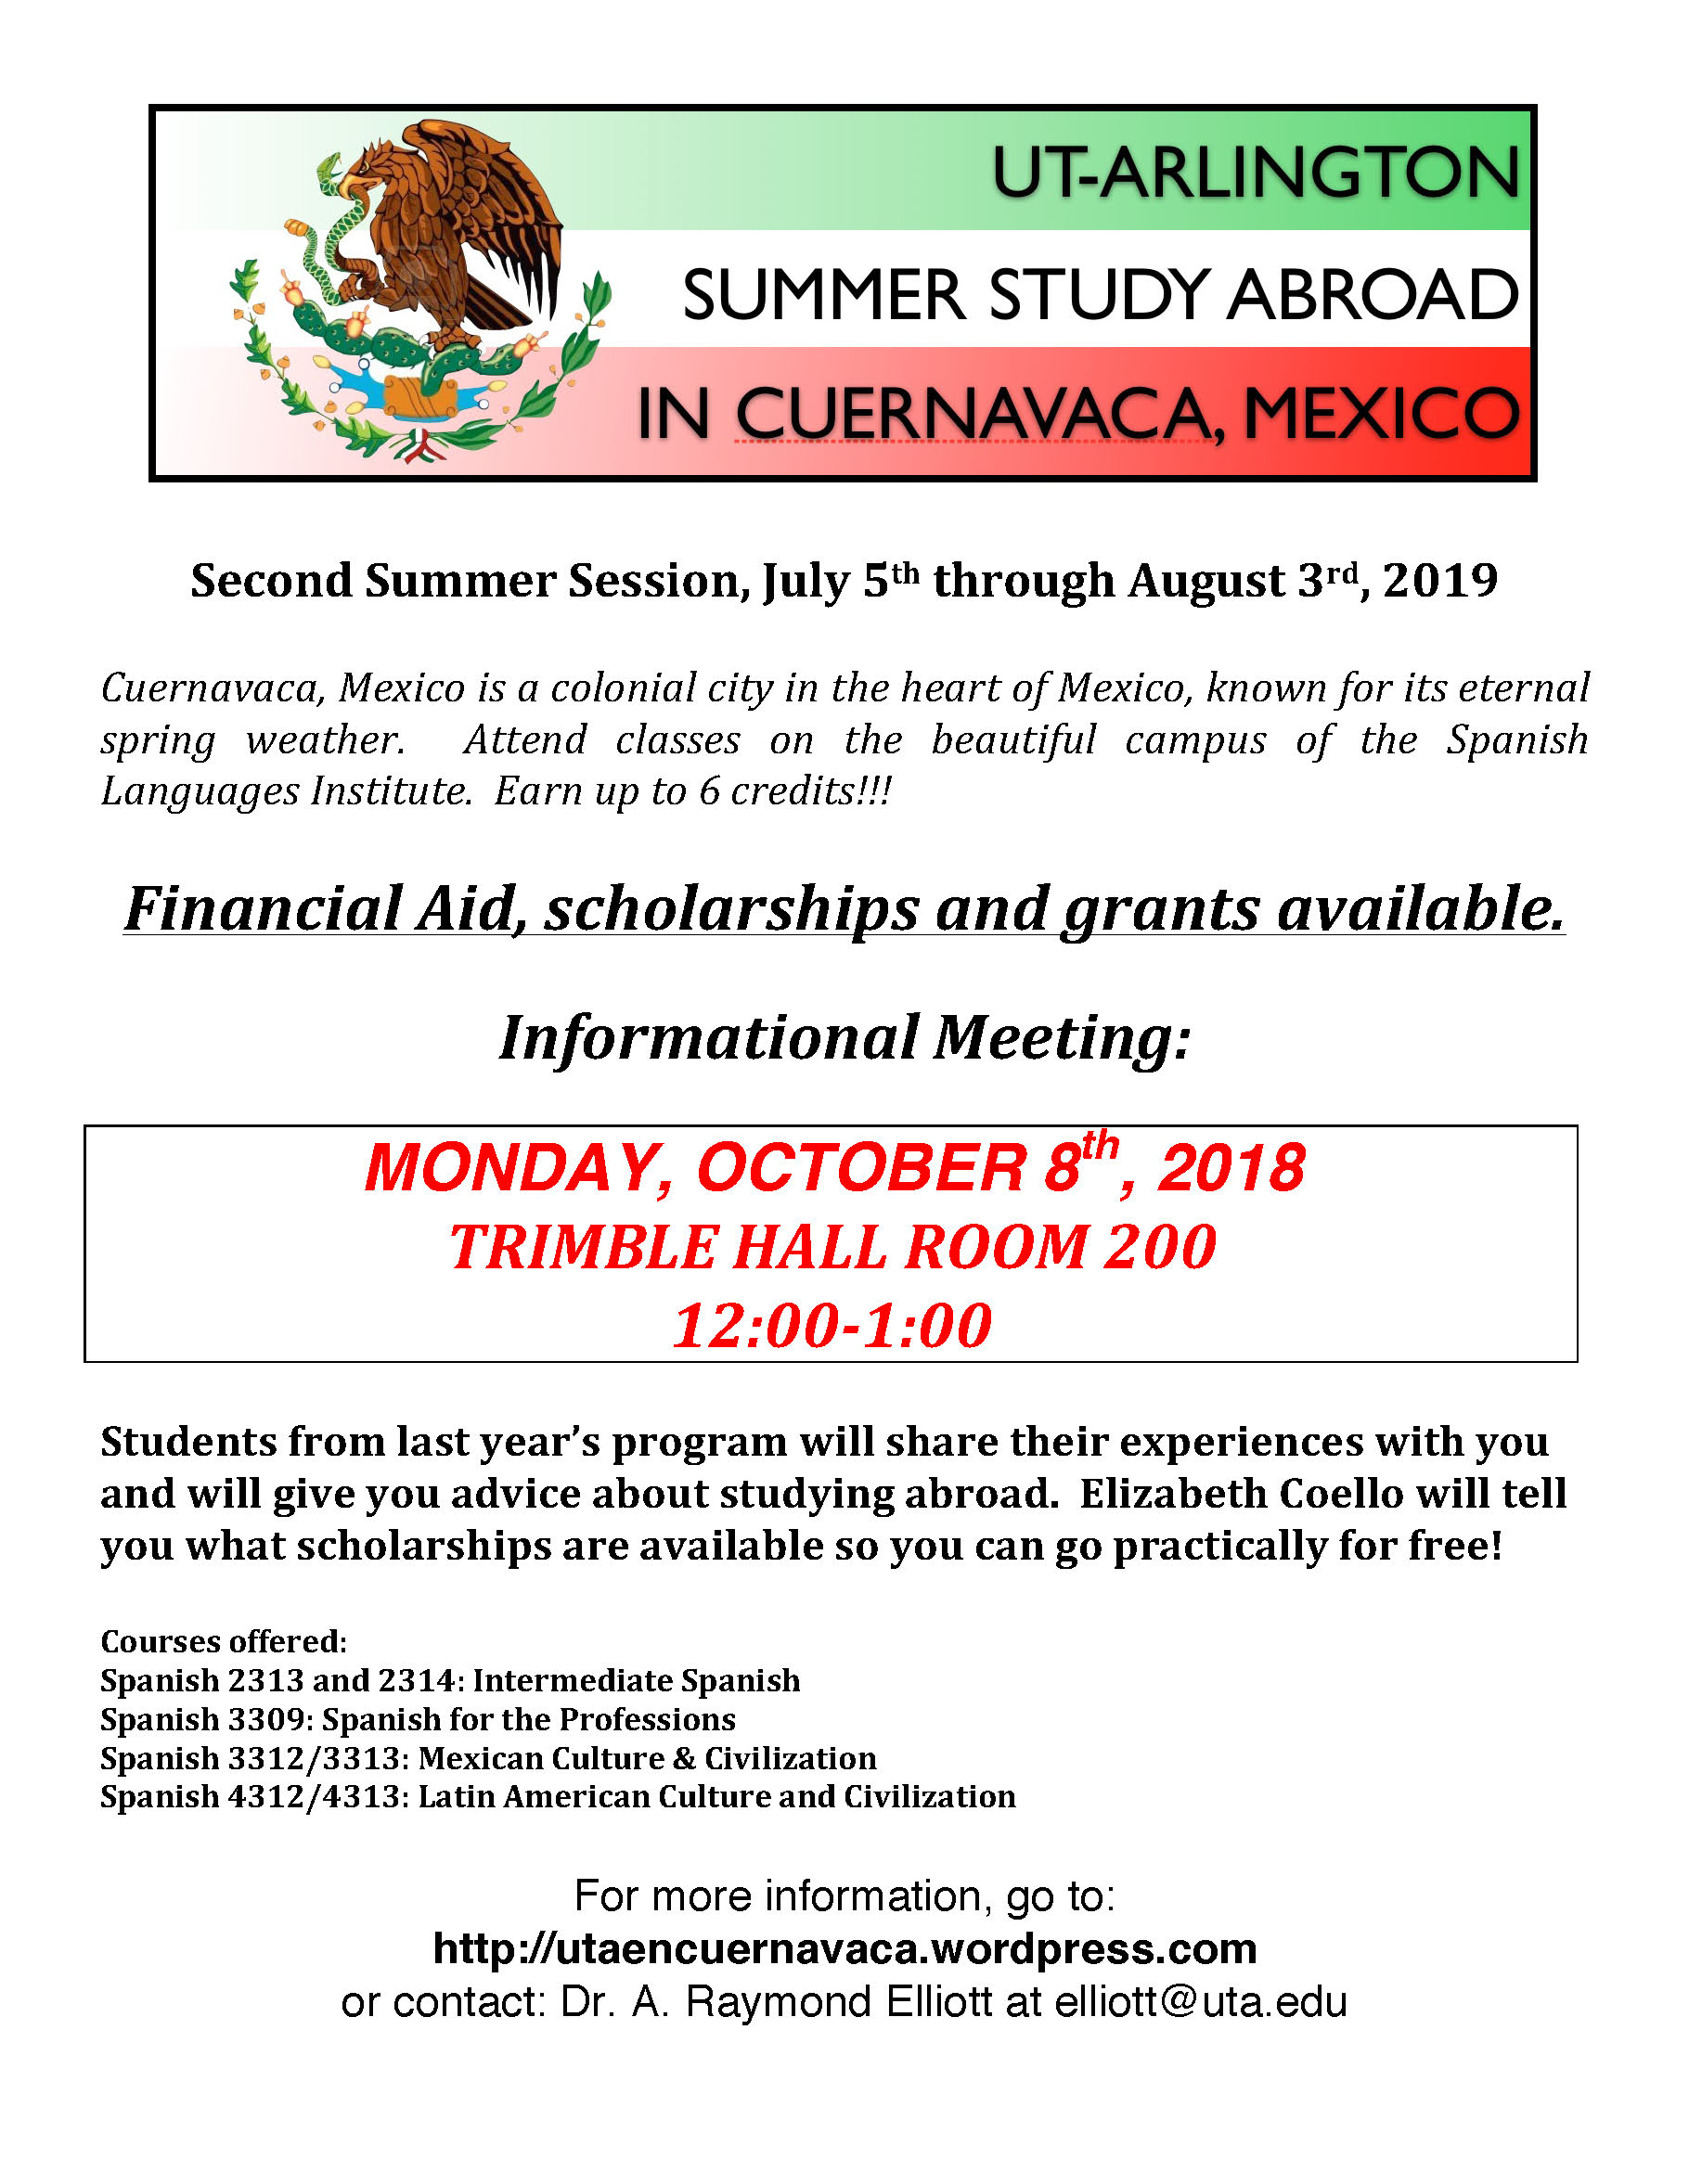 SUMMER STUDY ABROAD IN CUERNAVACA – Informational Meeting on